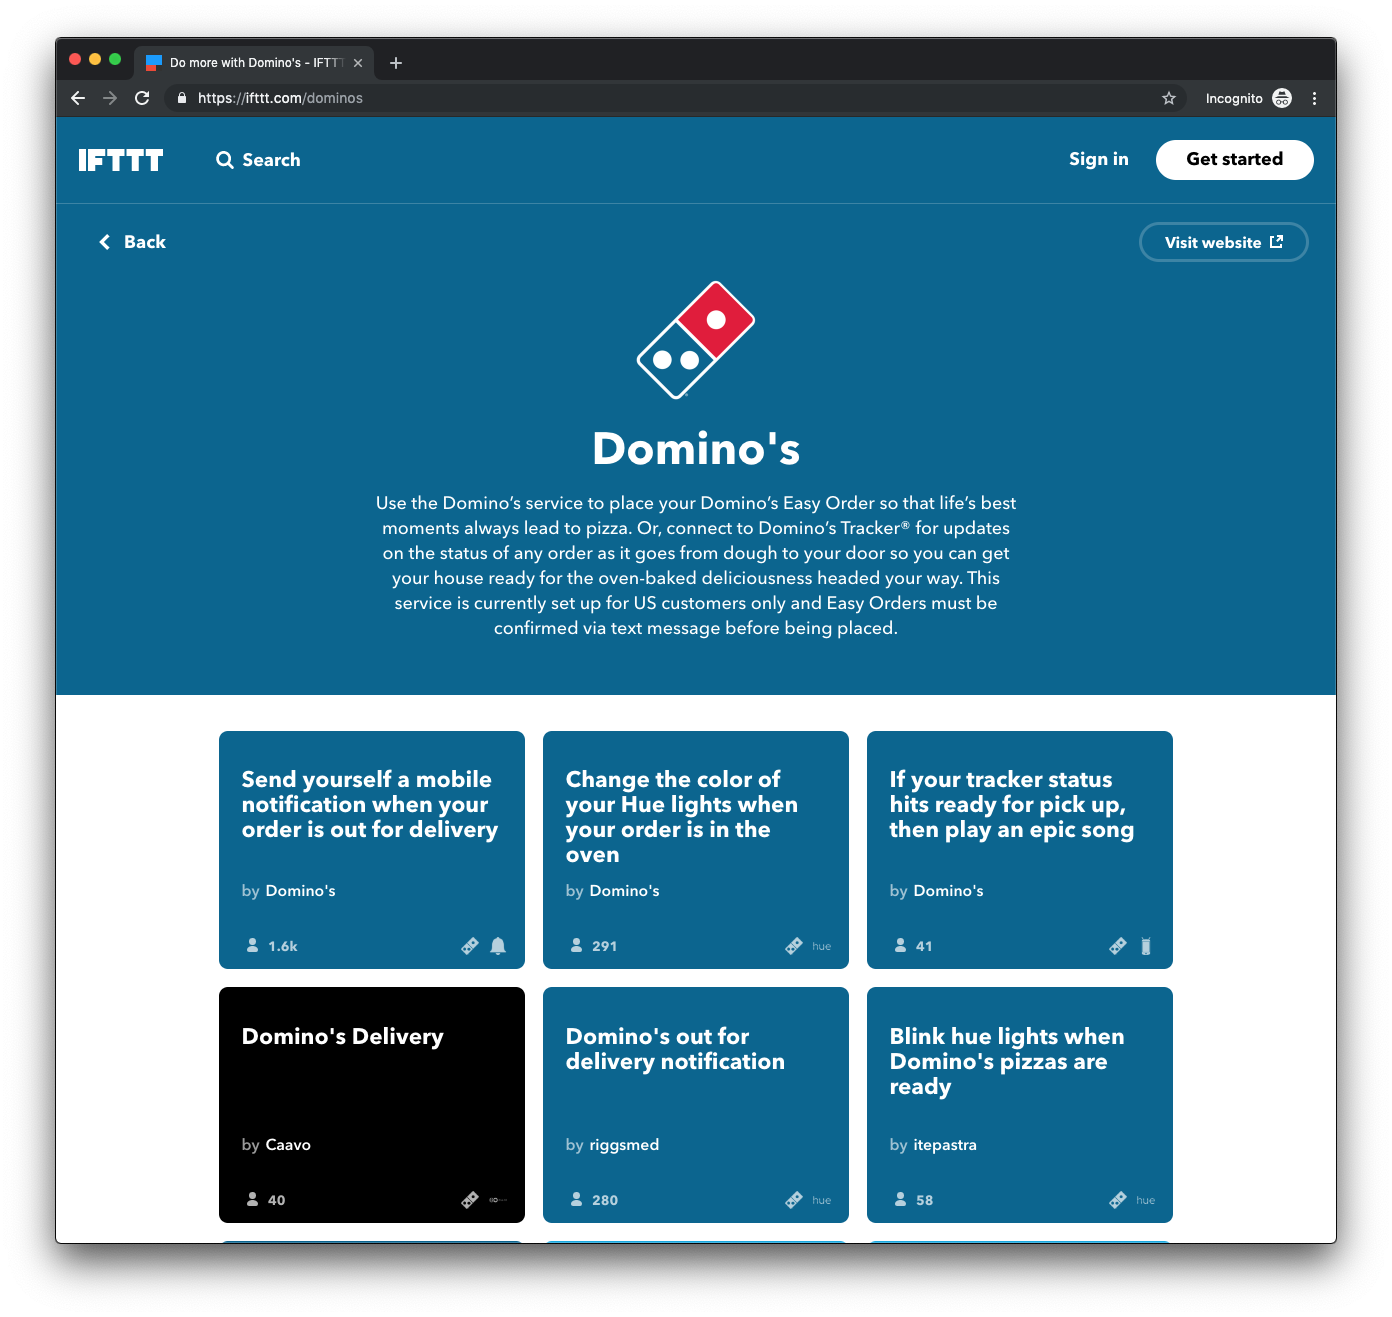 IFTTT Demo - Domino's on IFTTT